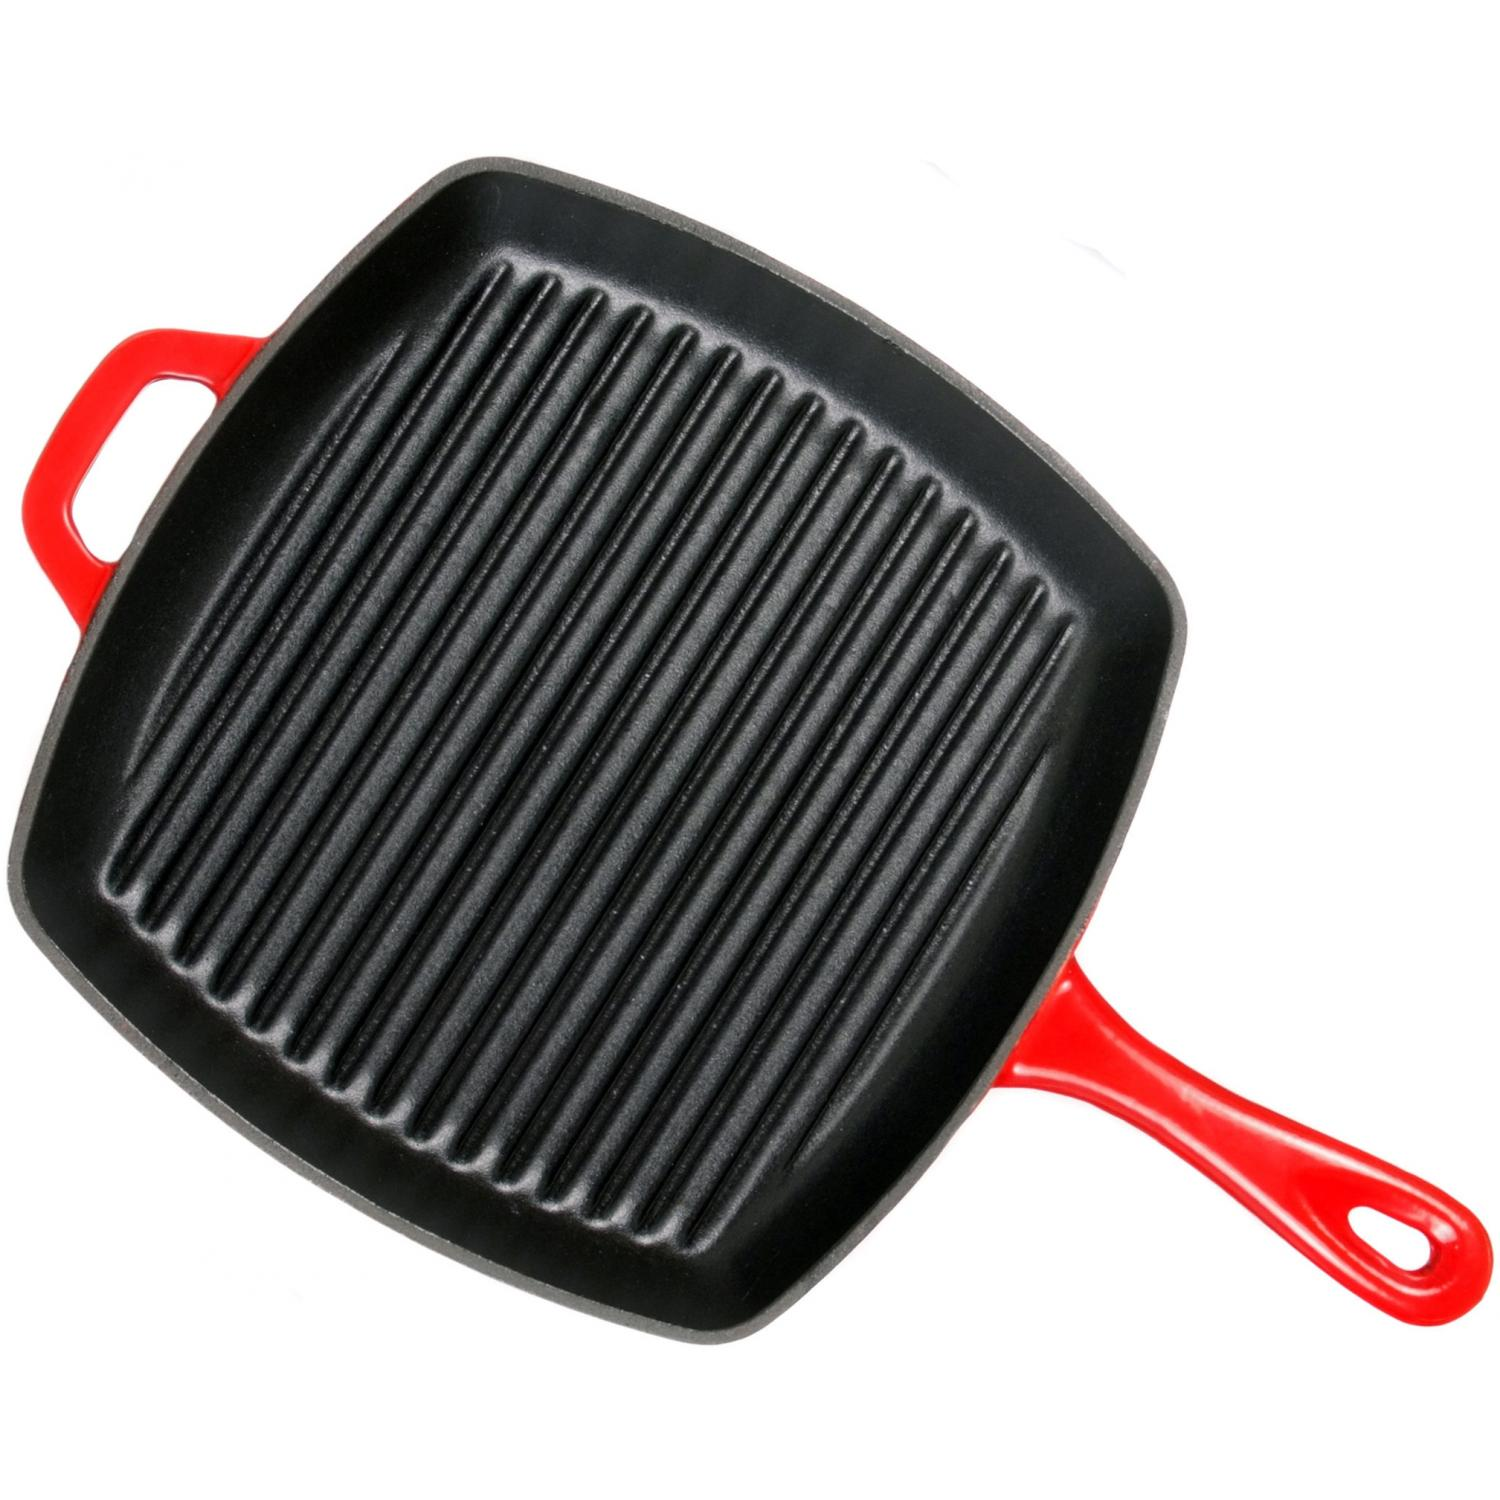 Lodge Pans Cast Iron Enamel Island Spice Grill Pan Red - ECSGP43